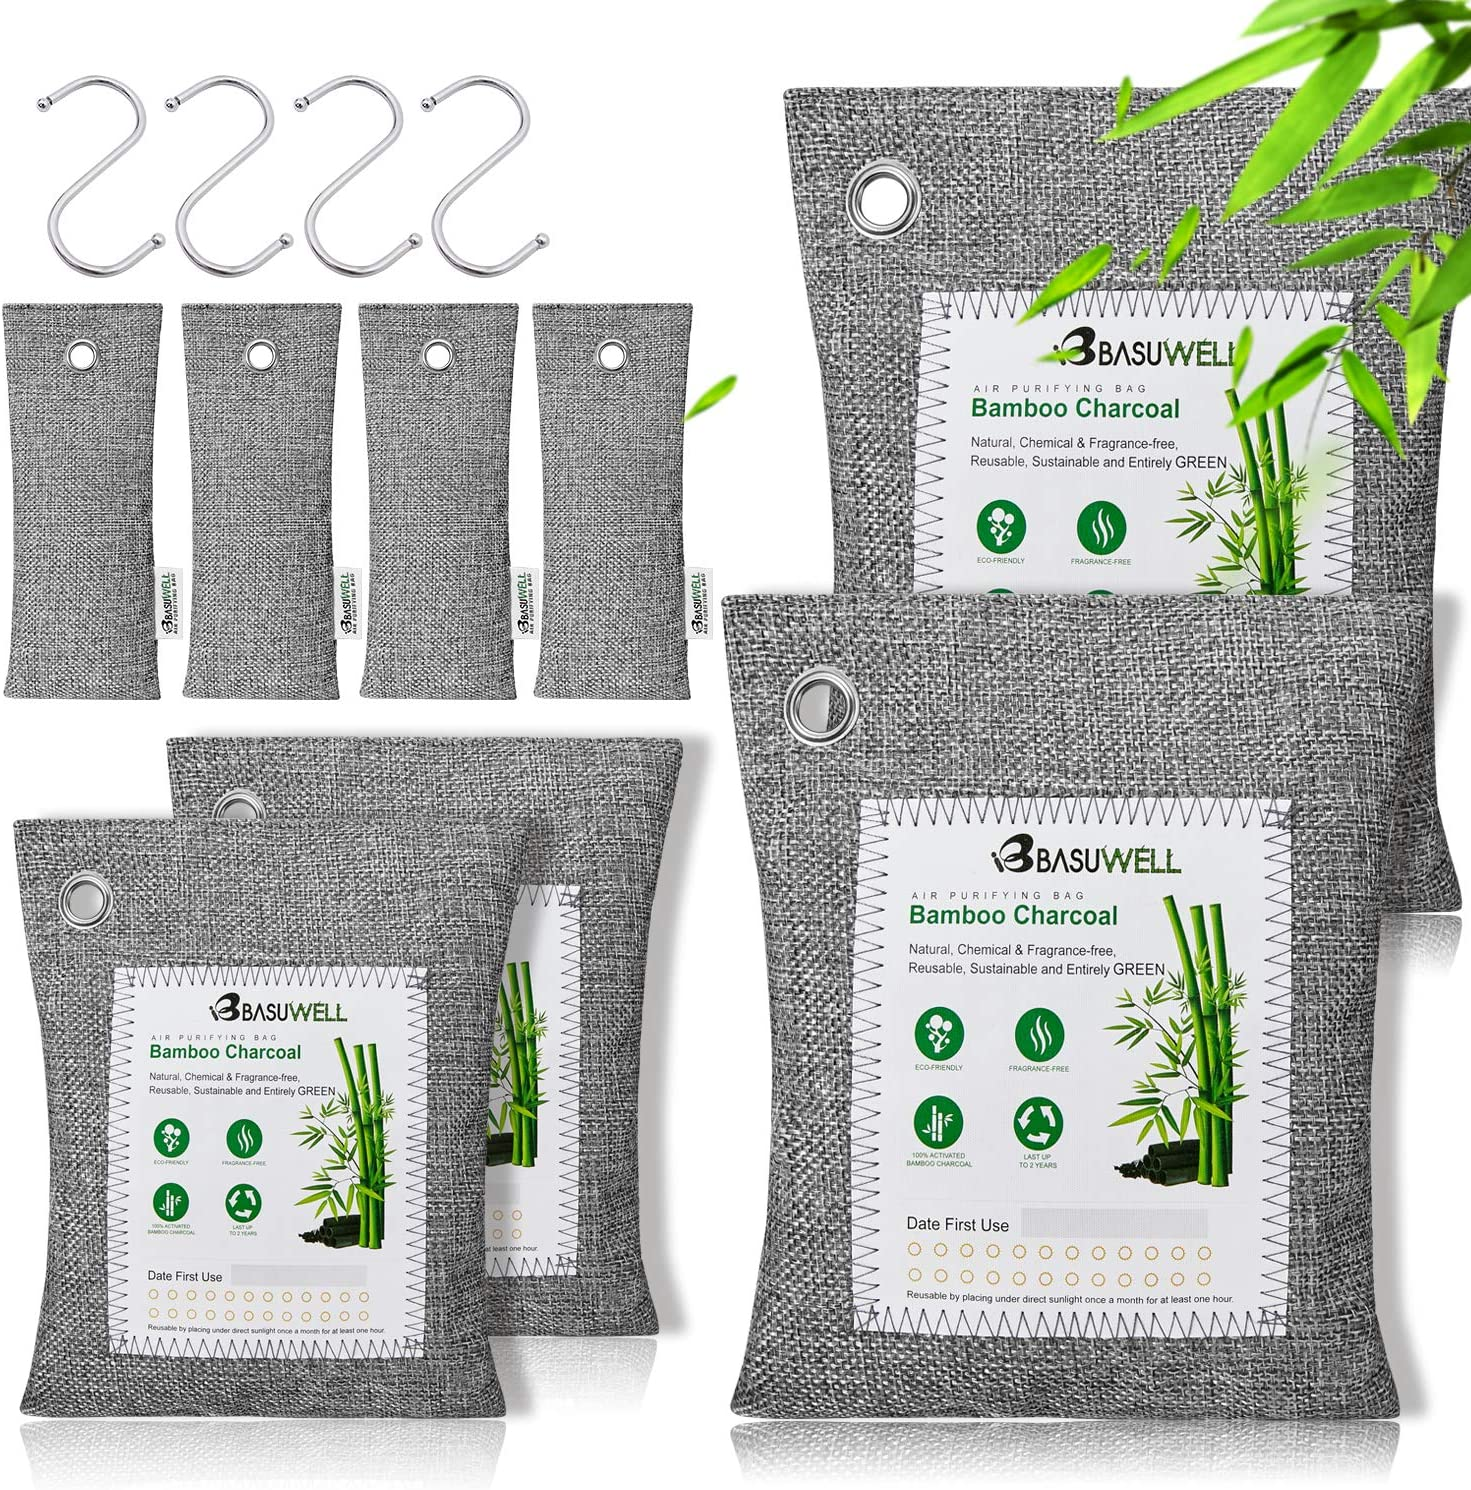 8 Pack Bamboo Charcoal Air Purifying Bags, Activated Charcoal Bags Odor Absorber, Moisture Absorber, Nature Fresh Air Purifier Bags, Odor Eliminators For Home, Pet, Closet (2x200g, 2x100g, 4x50g)